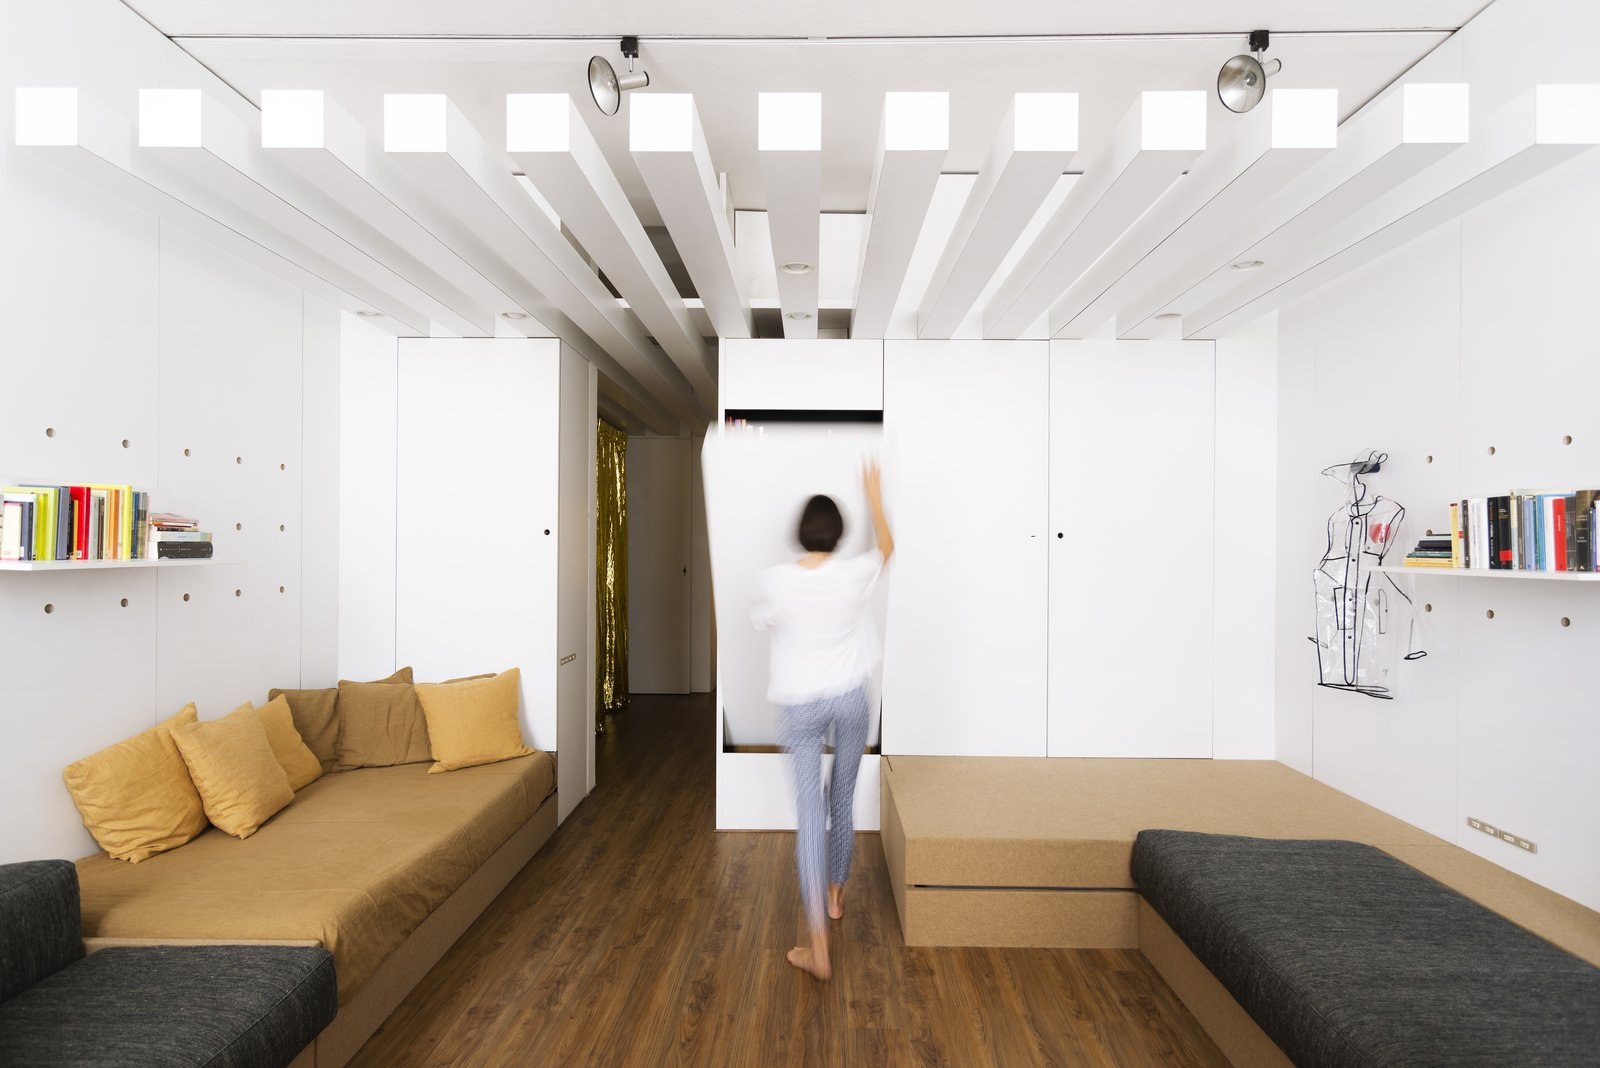 Living, Sofa, Bench, Shelves, Medium Hardwood, and Track Slim, white, brise soleil-like beams run along the length of the ceiling in the mid-section of the apartment.  Best Living Track Shelves Photos from A Tiny Florence Flat Is Reborn as an Architect's Live/Work Space